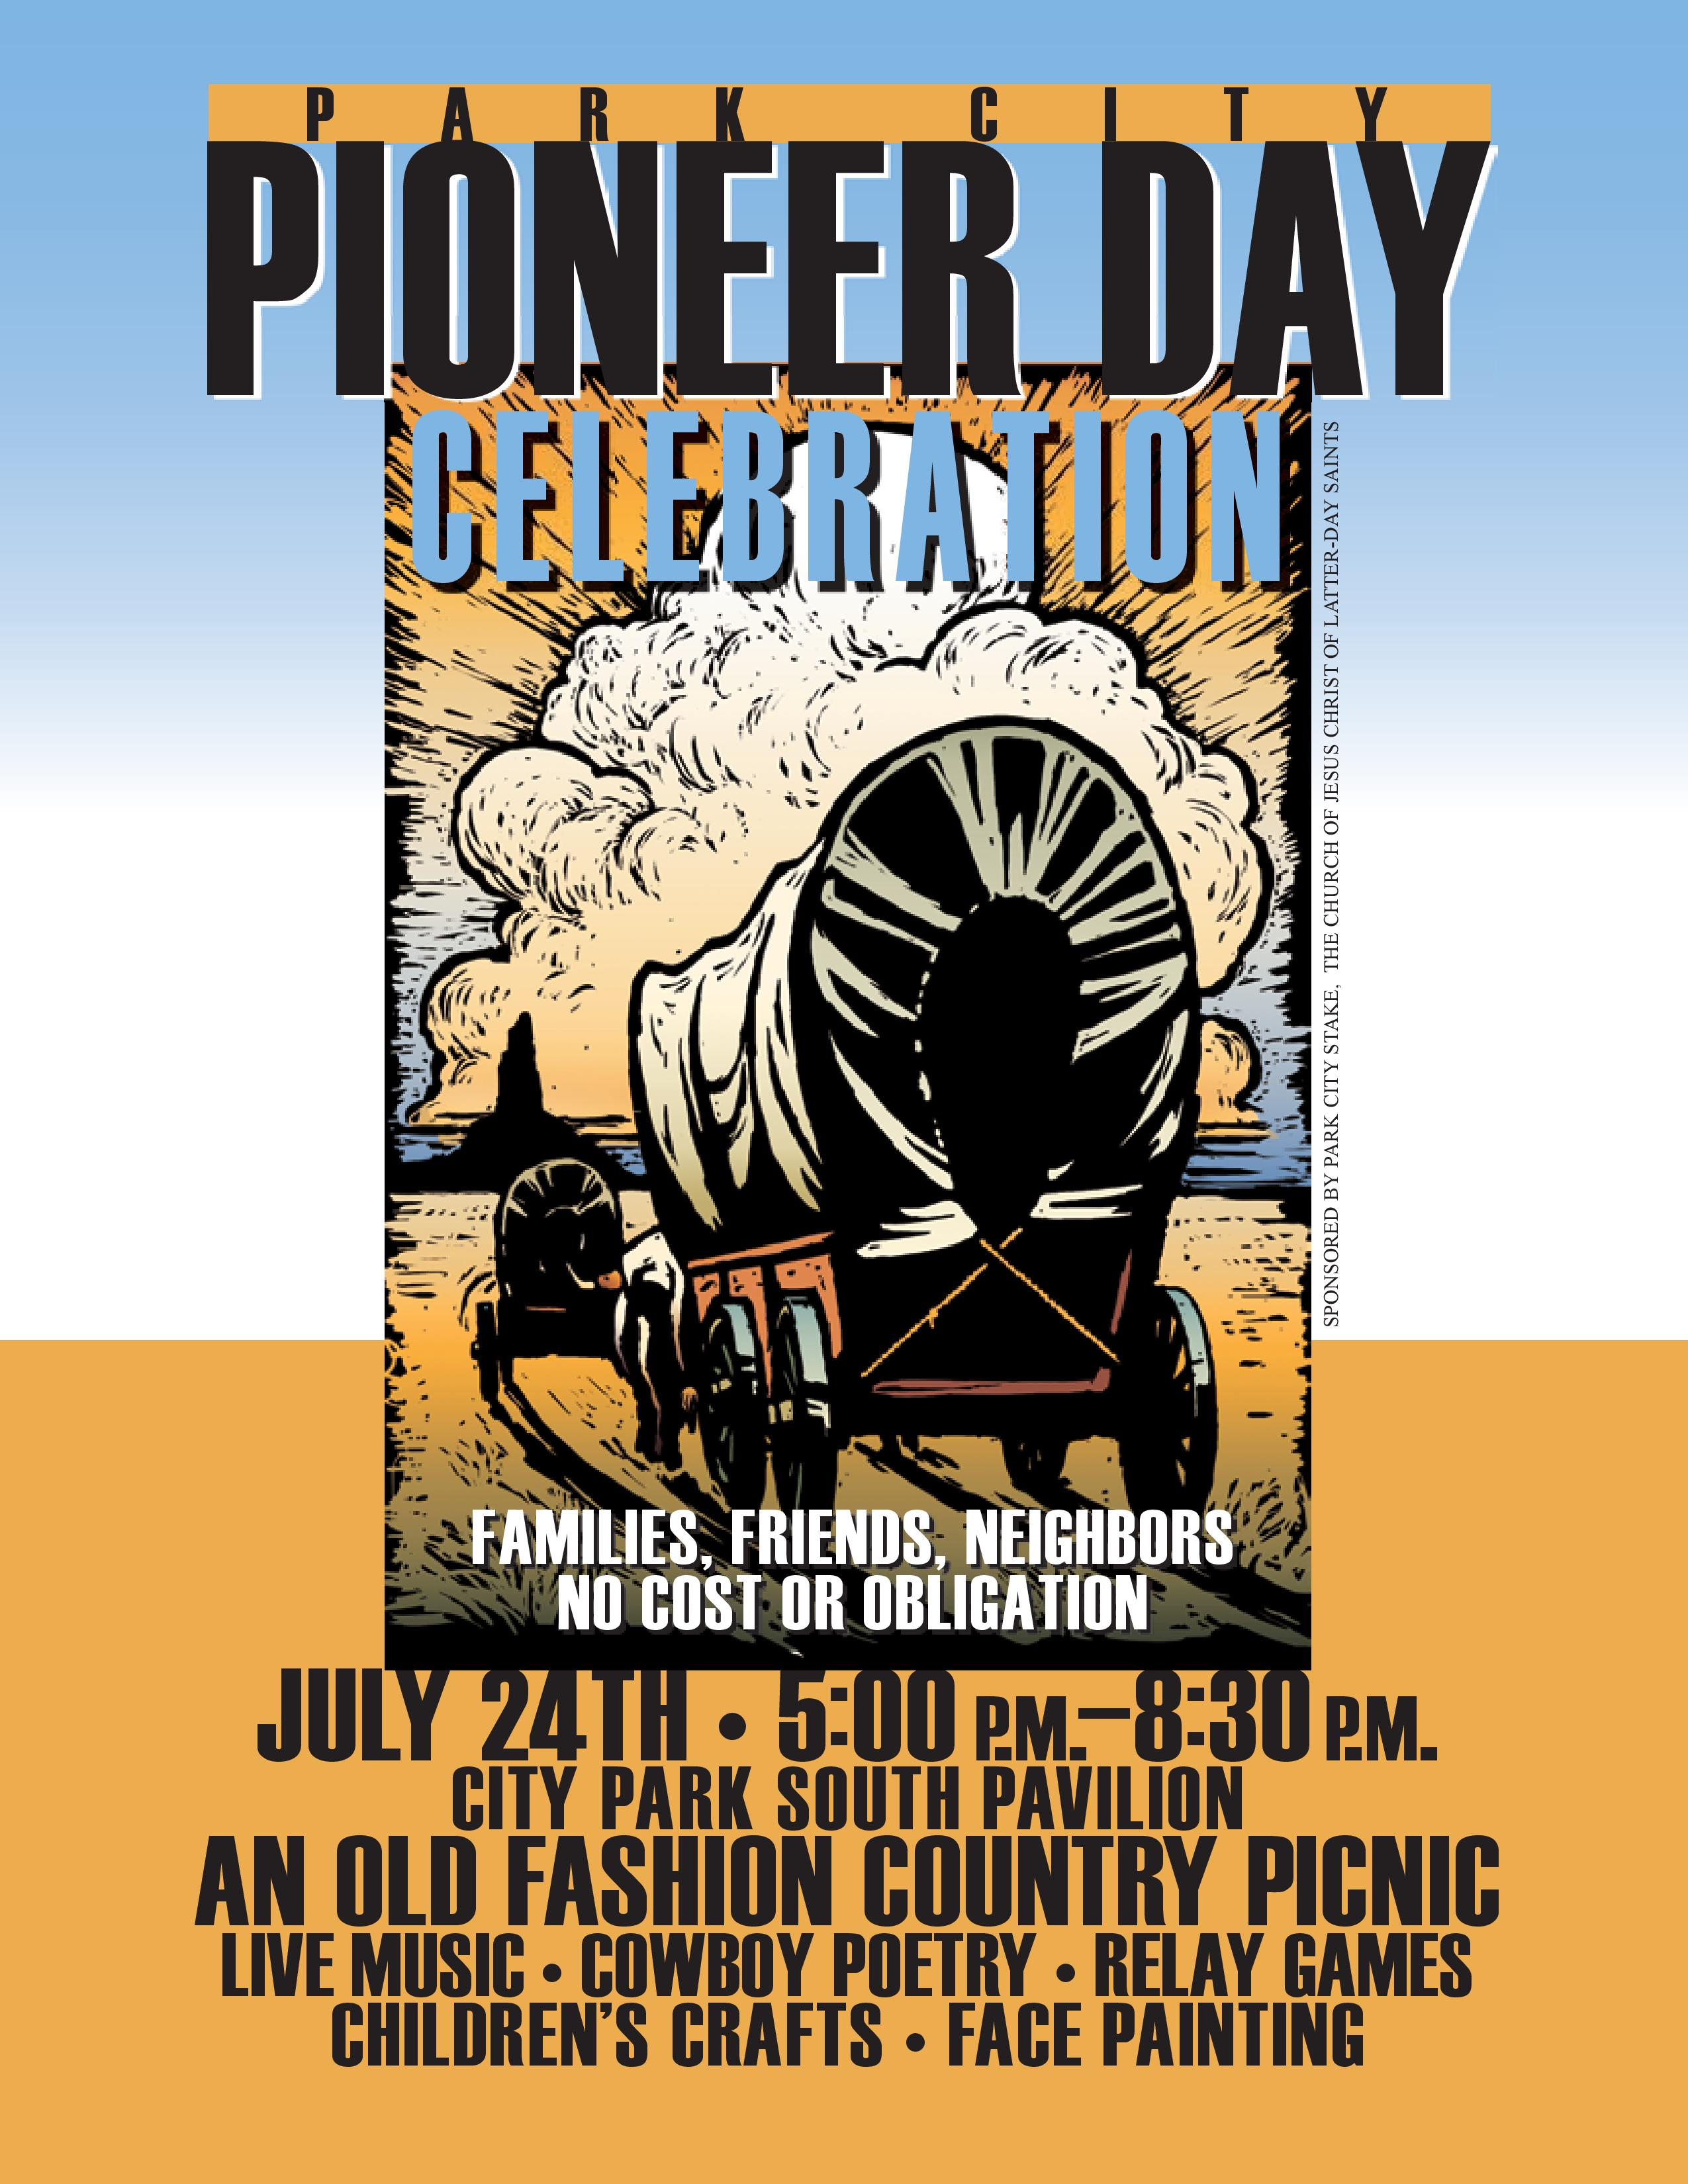 The Park City Pioneer Day Celebration is scheduled for Thursday, July 24, from 5-8:30 p.m. at the South Pavilion in City Park. There is no cost to attend. (Courtesy of Park City Stake of LDS church)